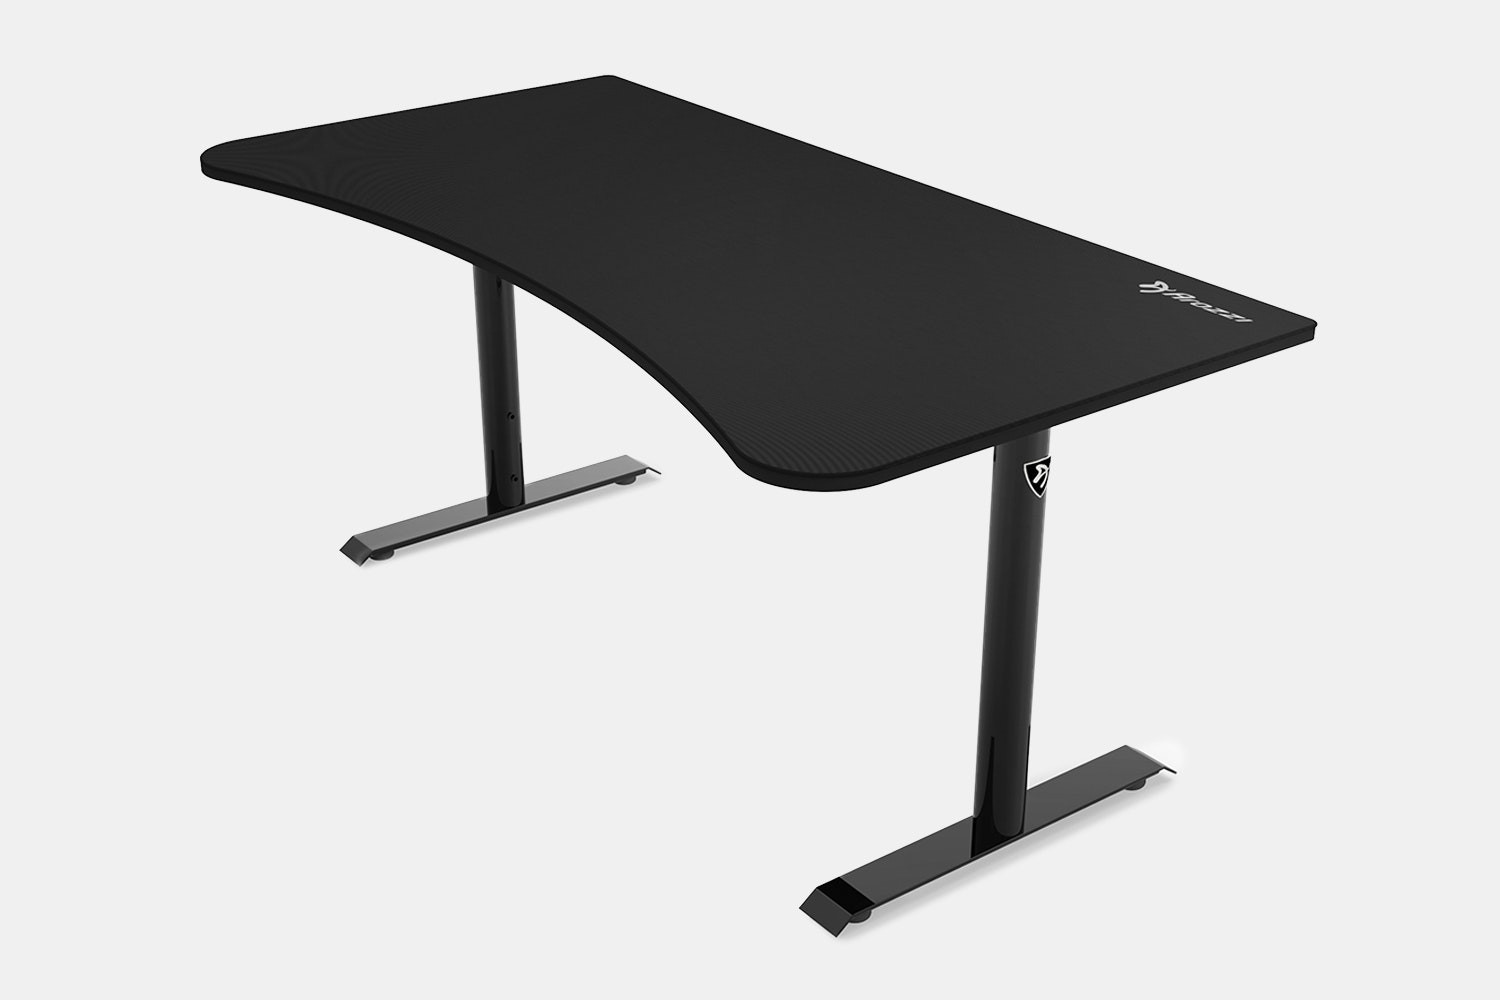 Arozzi Arena Gaming Desk Anniversary Giveaway Price